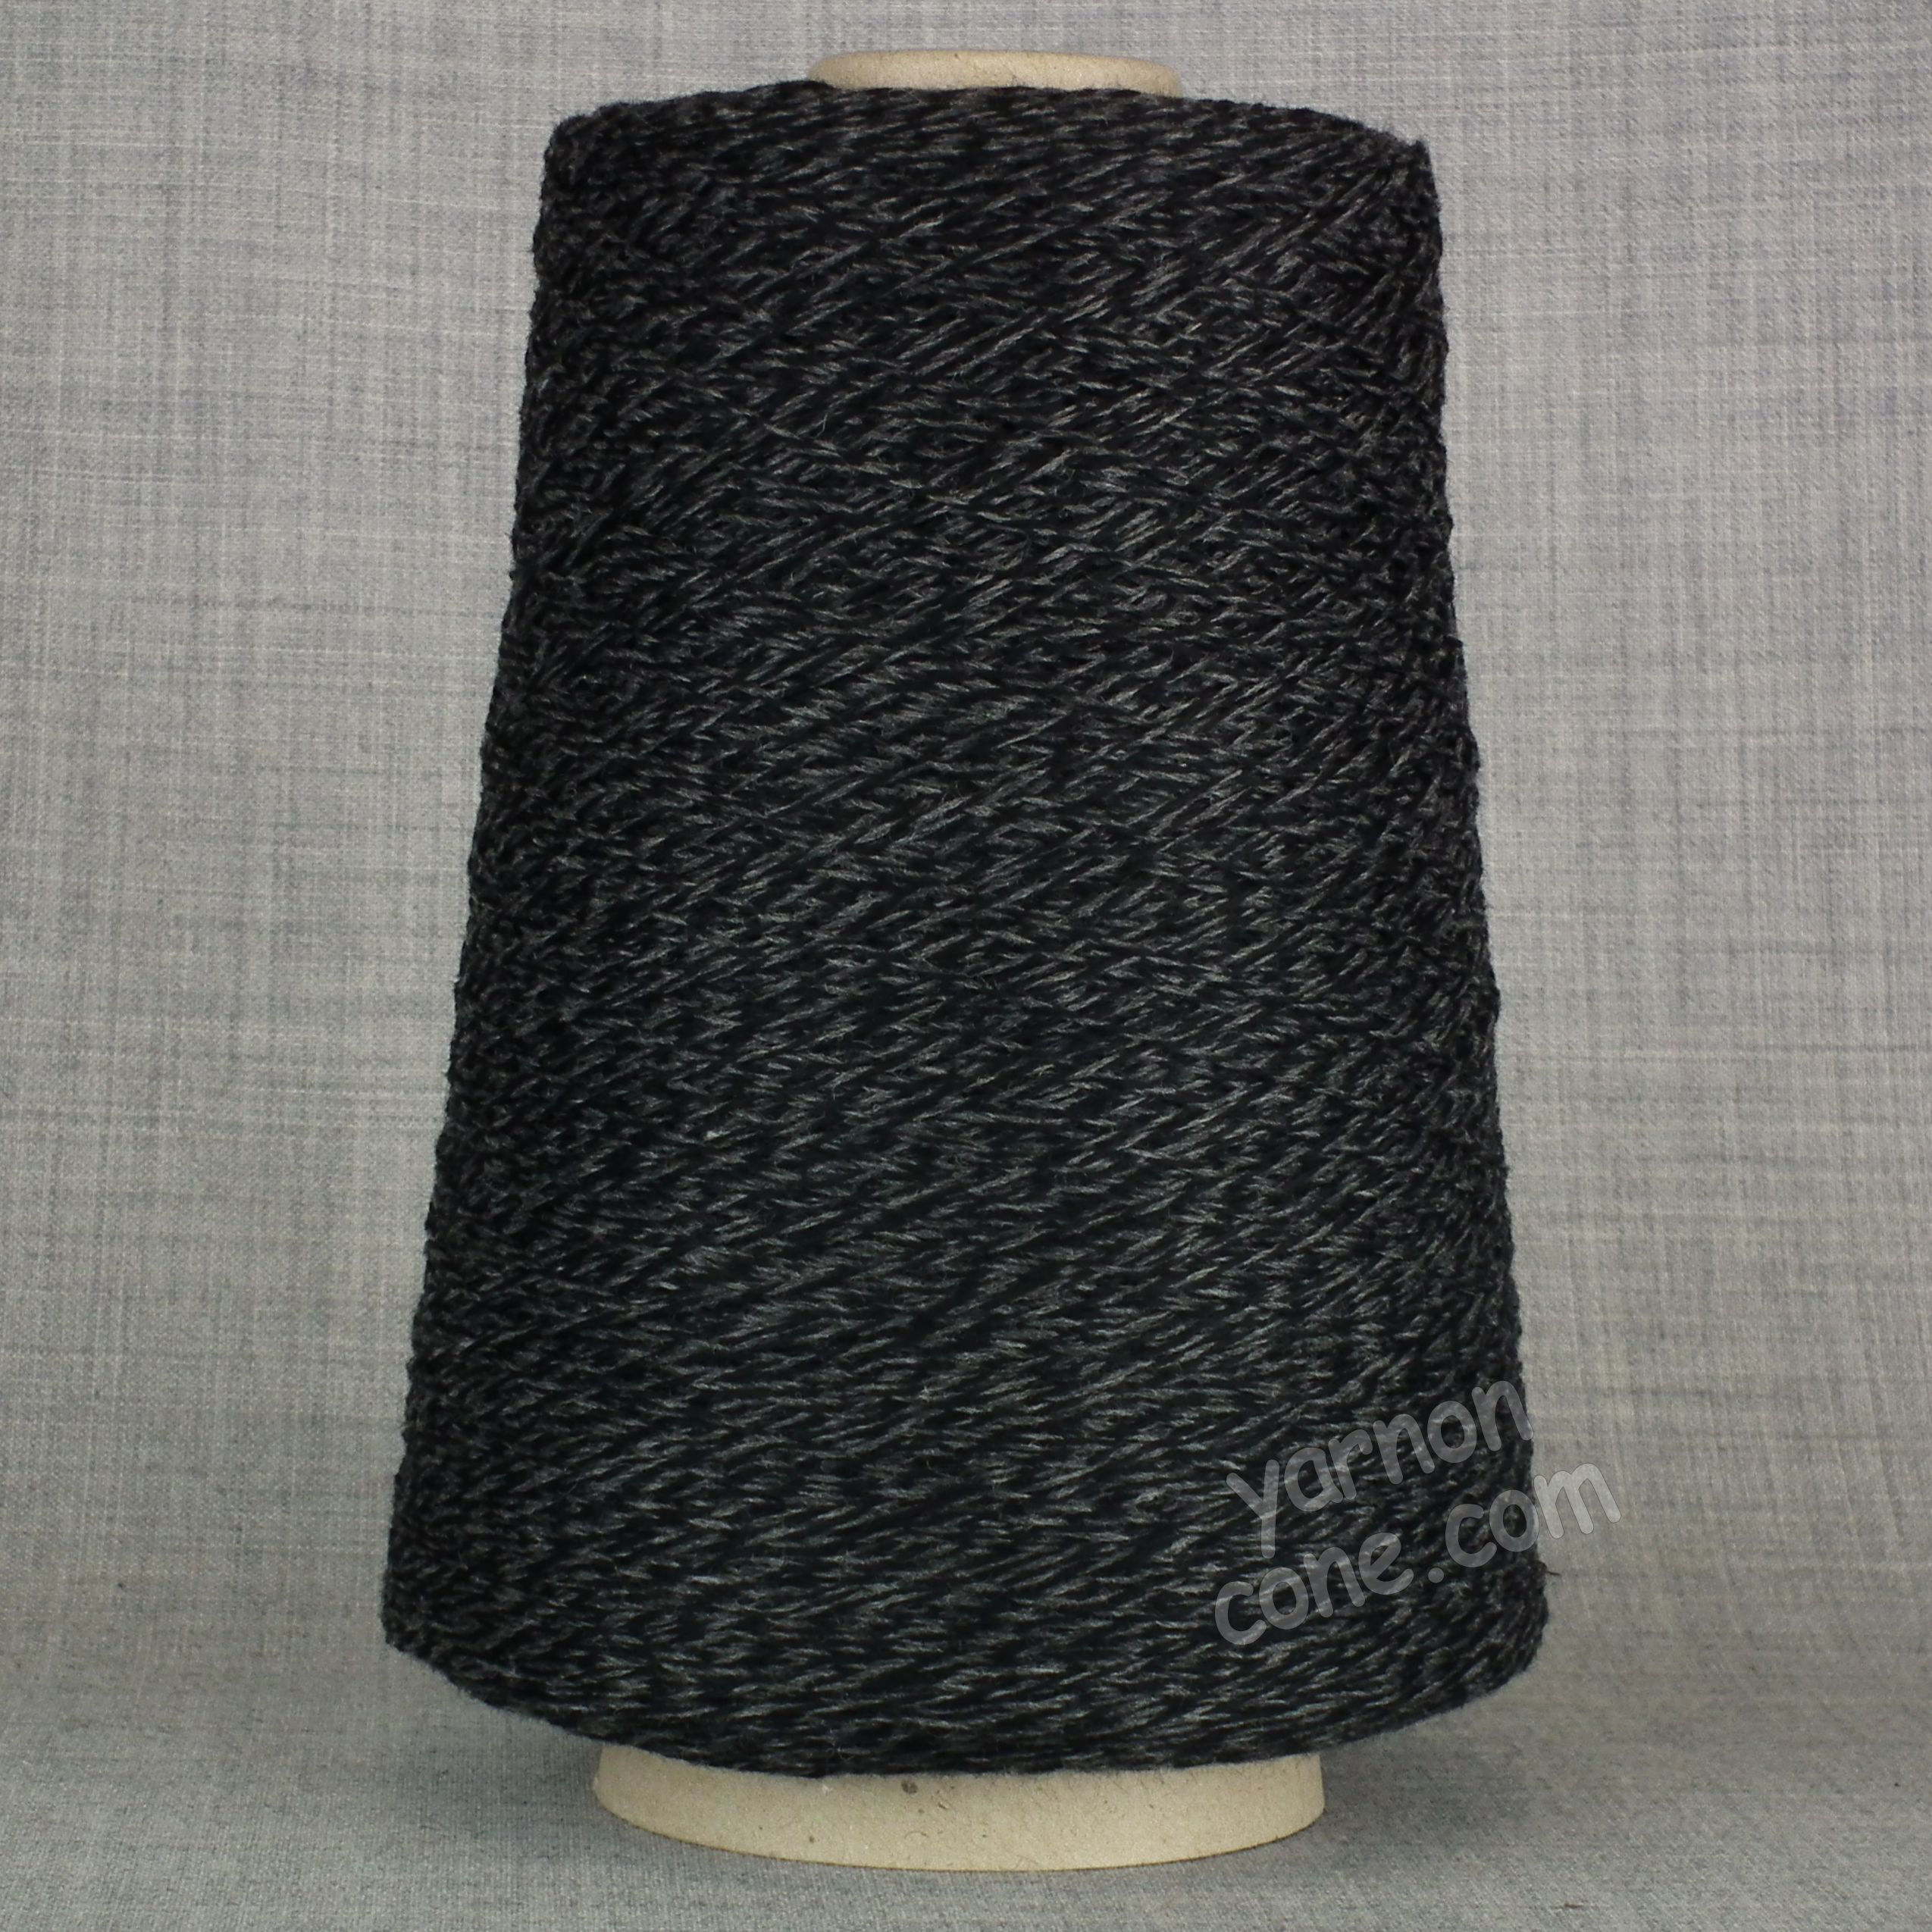 soft cashmere merino 3 ply yarn on cone wool hand machine knitting UK black grey tweed